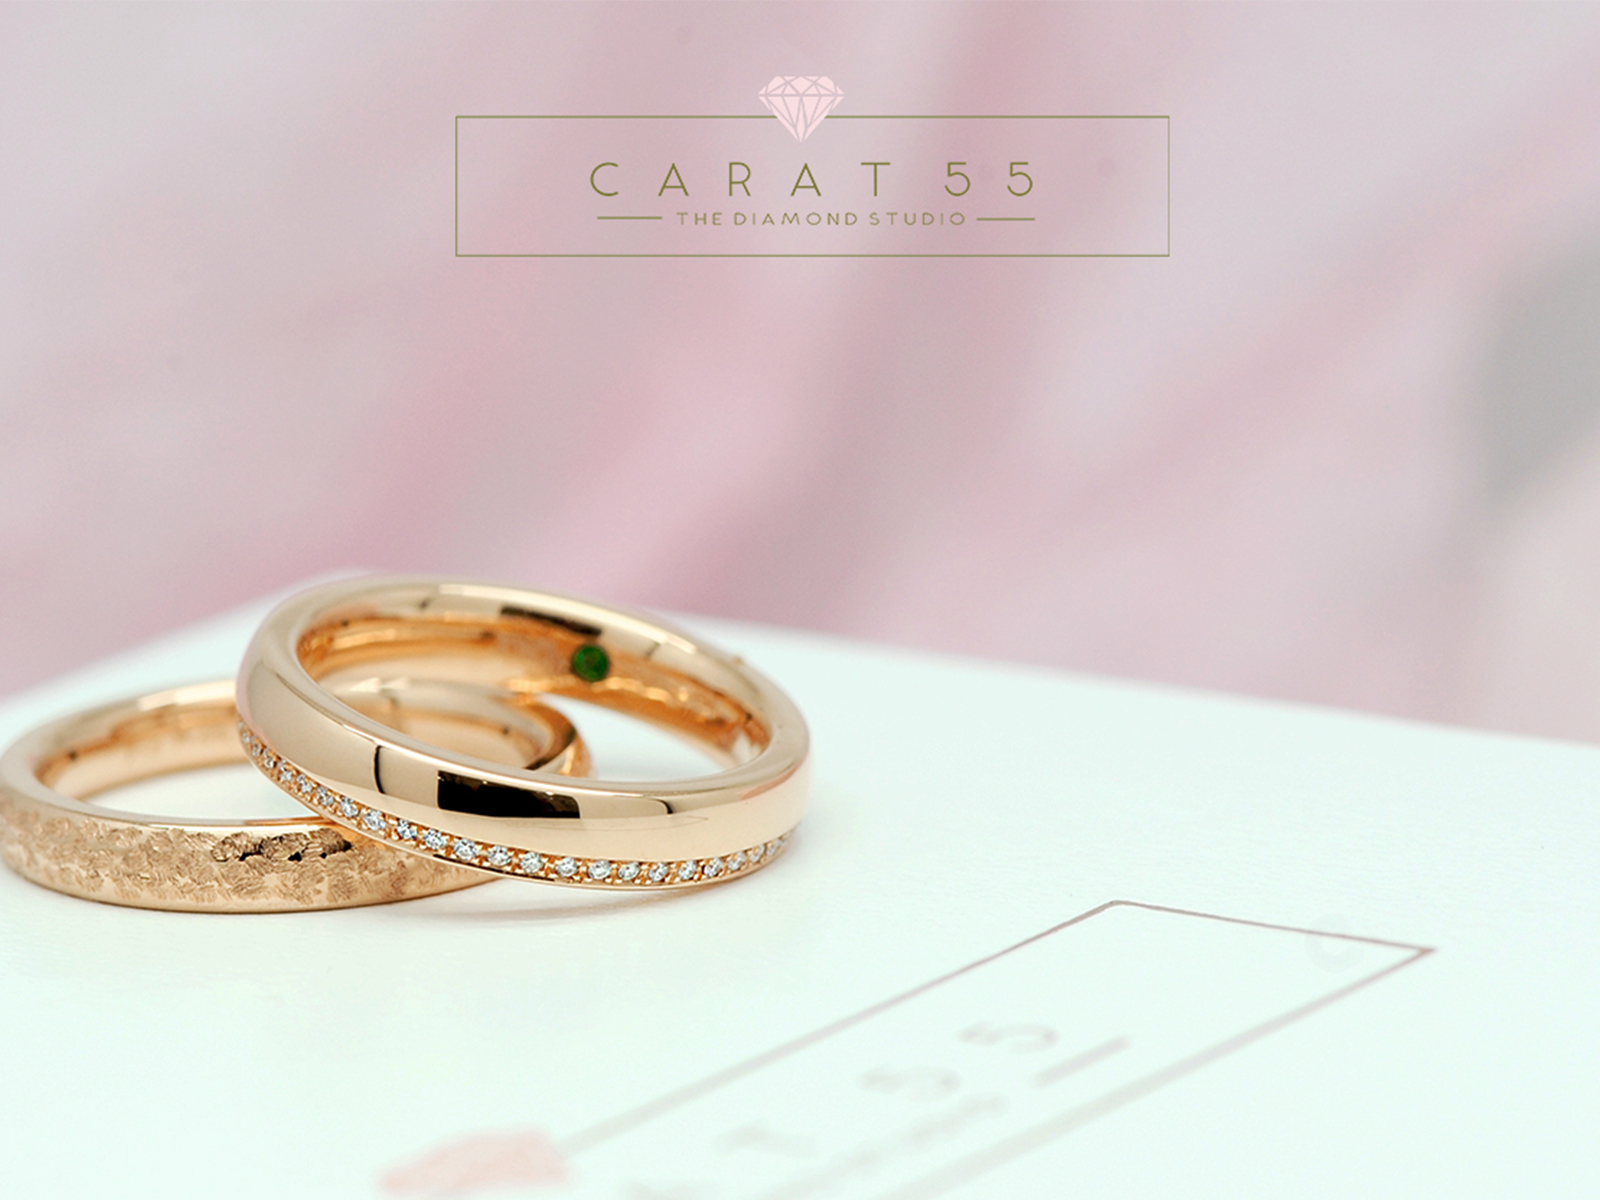 Carat 55 - The Diamond Studio